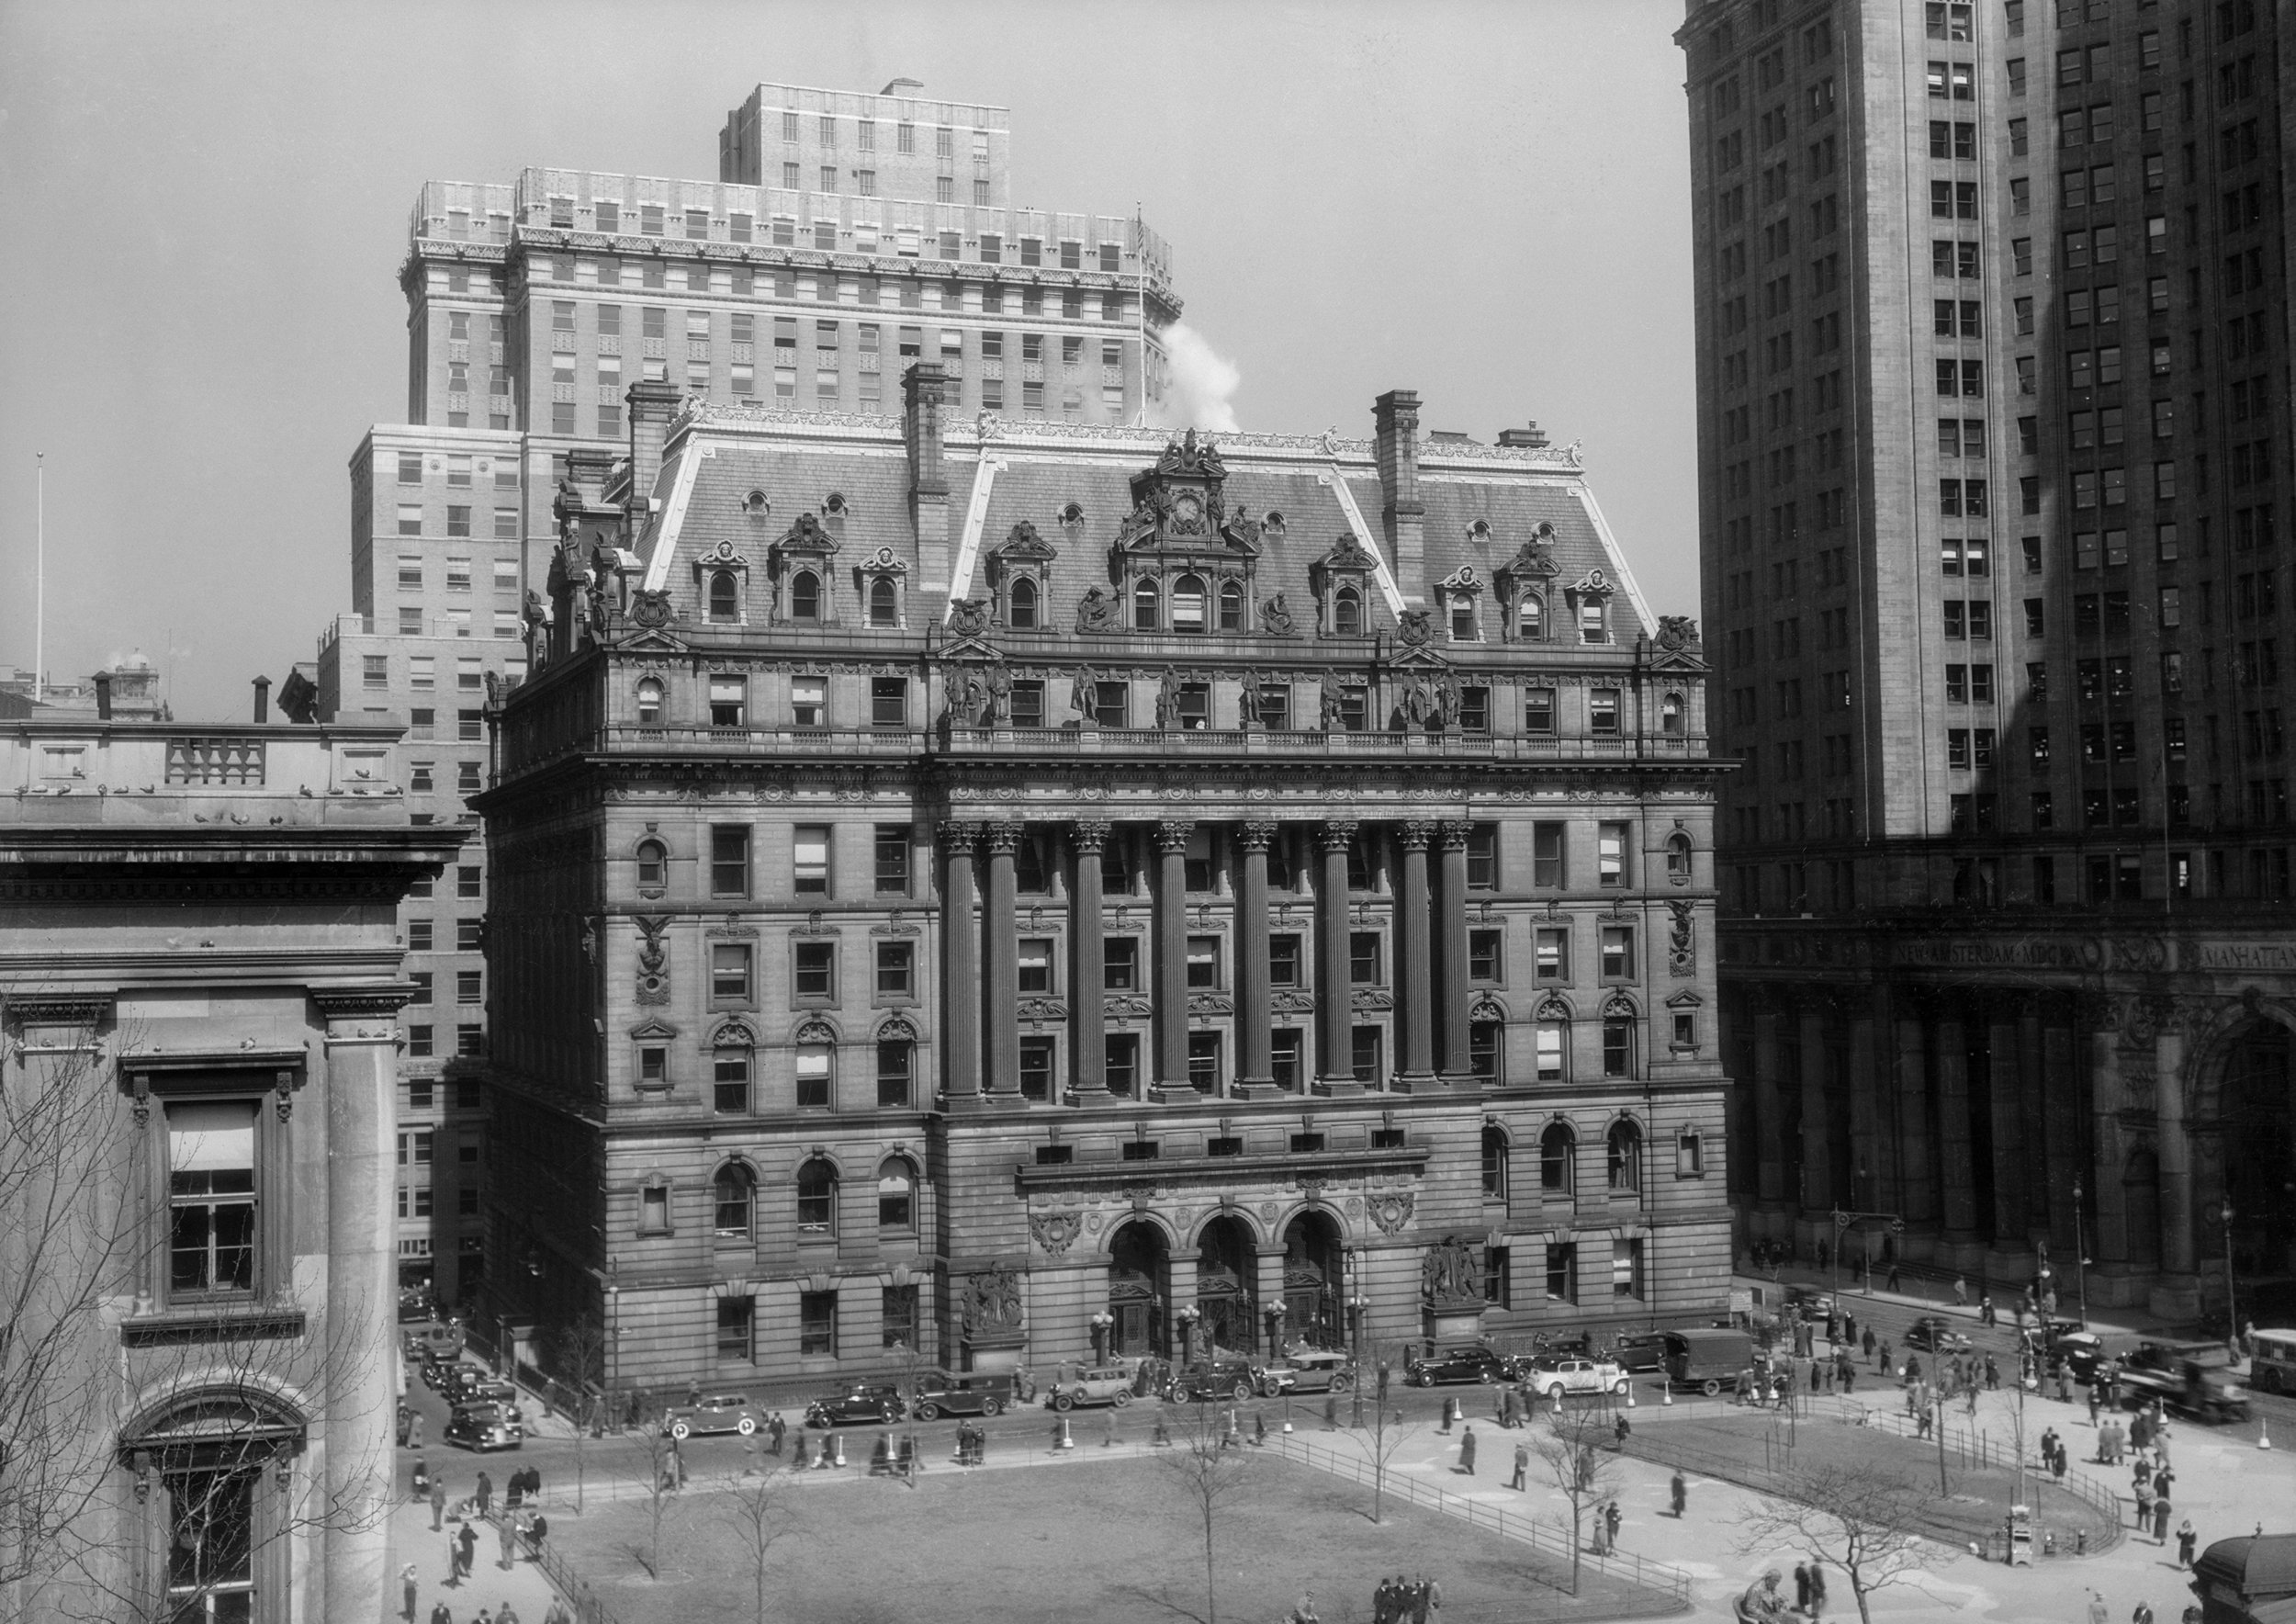 Hall of Records, ca. 1935. NYC Municipal Archives.